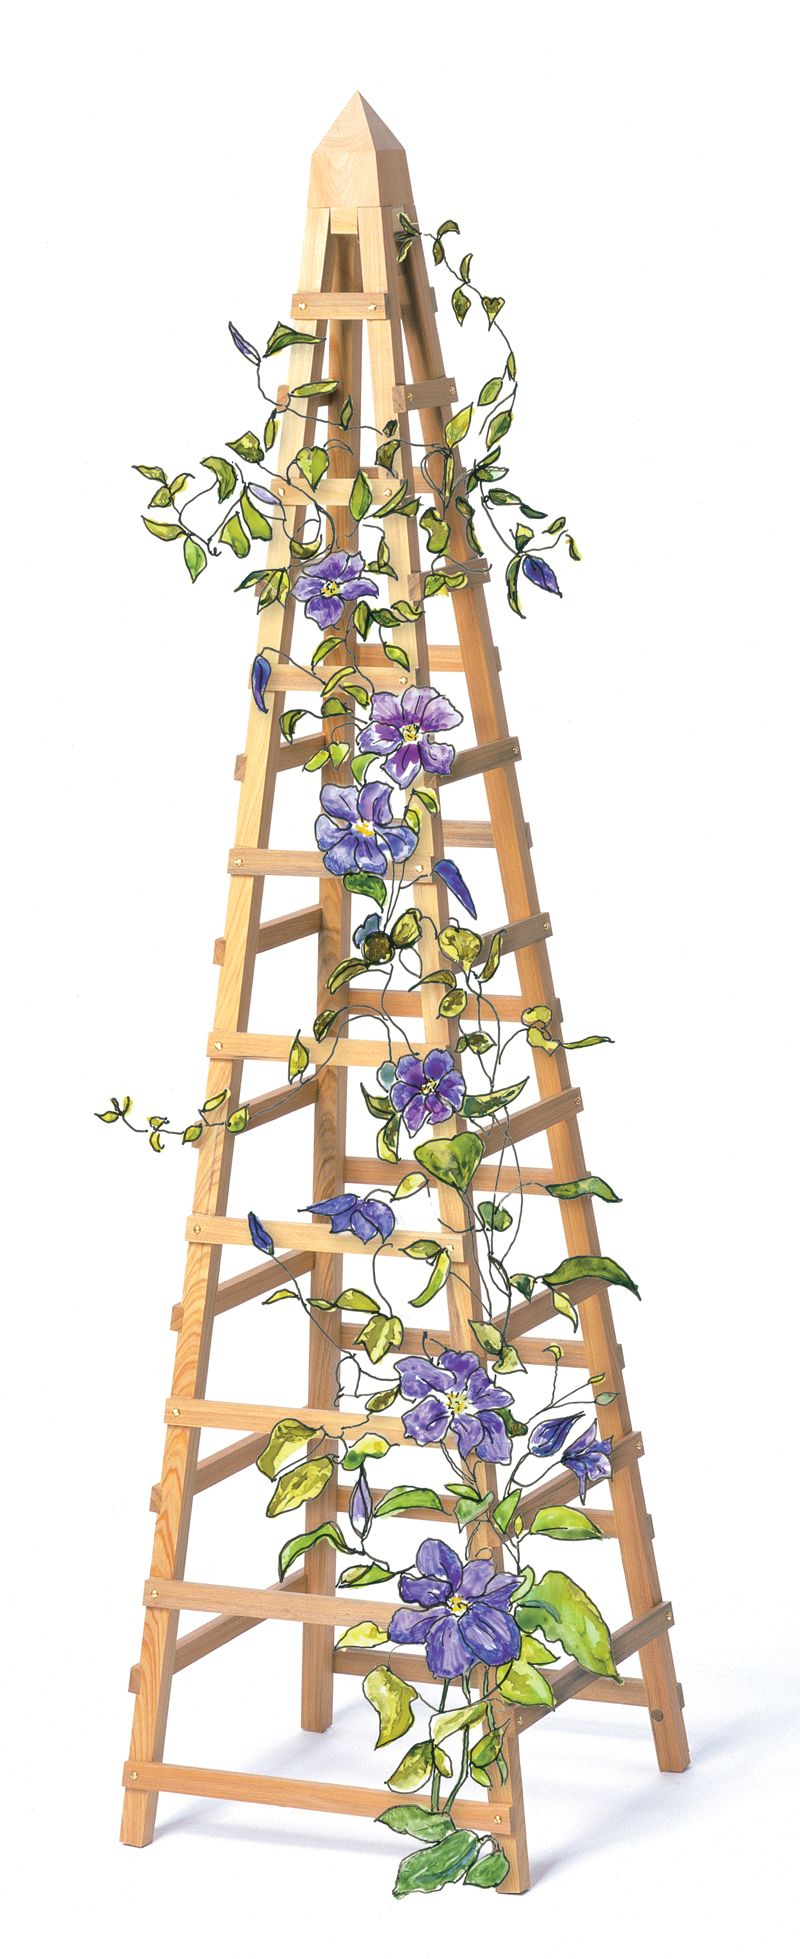 Vine Trellis Vine trellis, Garden trellis, Garden projects